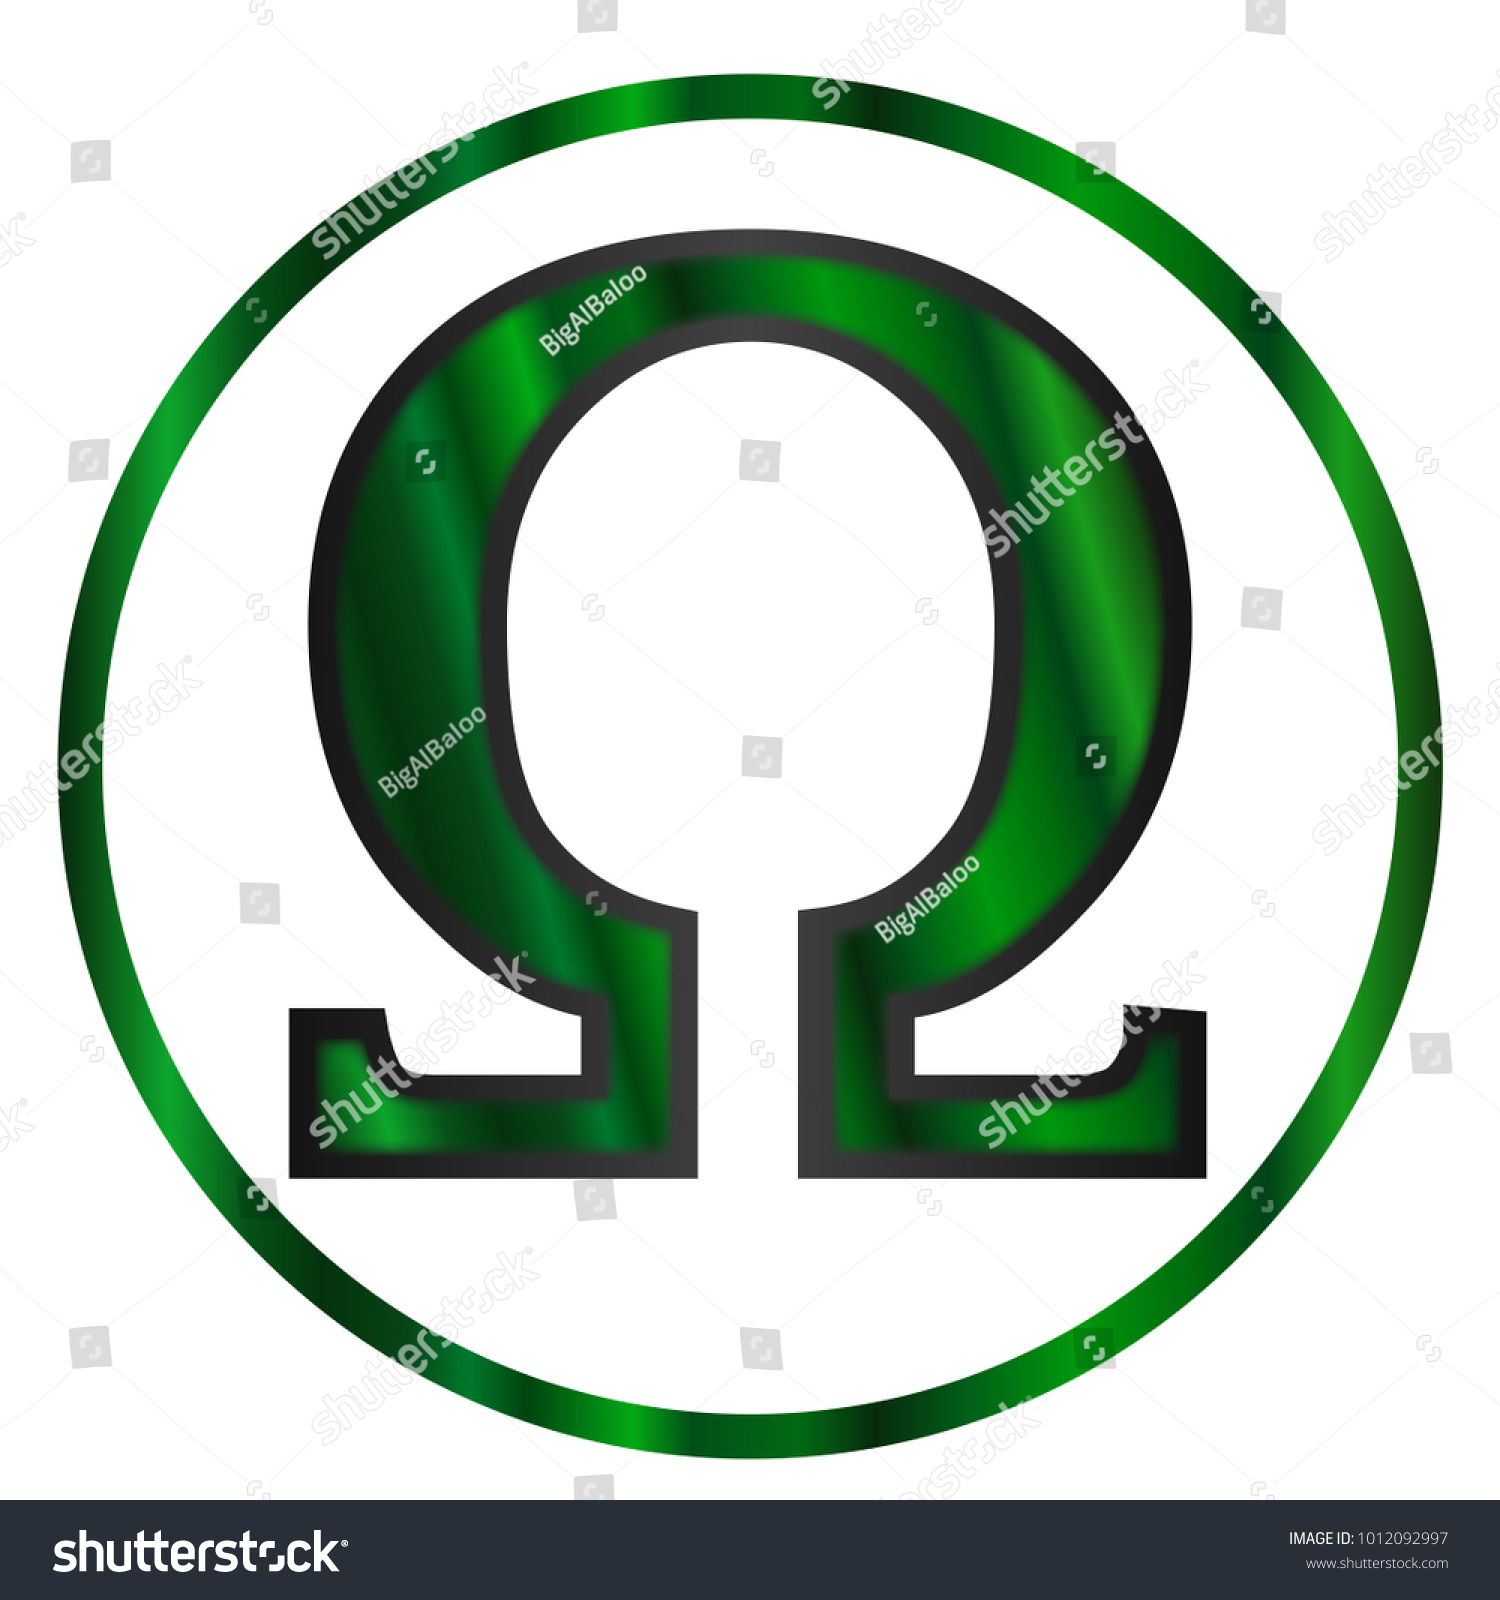 Omega letter greek alphabet isolated over stock illustration omega a letter from the greek alphabet isolated over a white background biocorpaavc Gallery